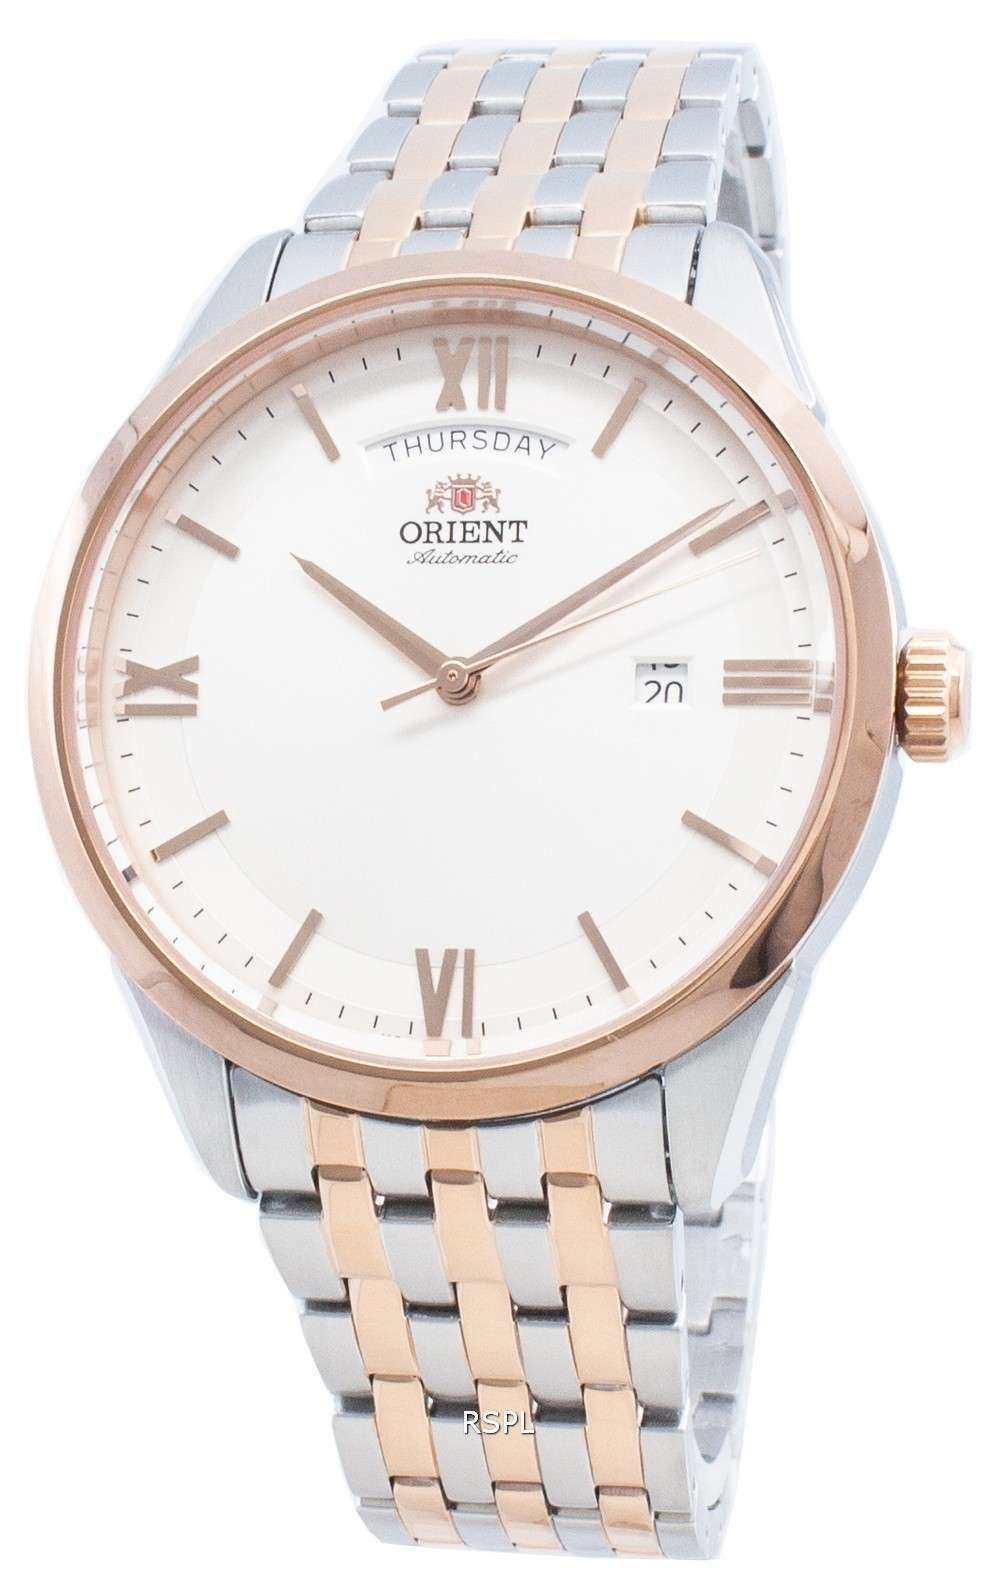 Orient Automatic RA-AX0001S0HC Men's Watch